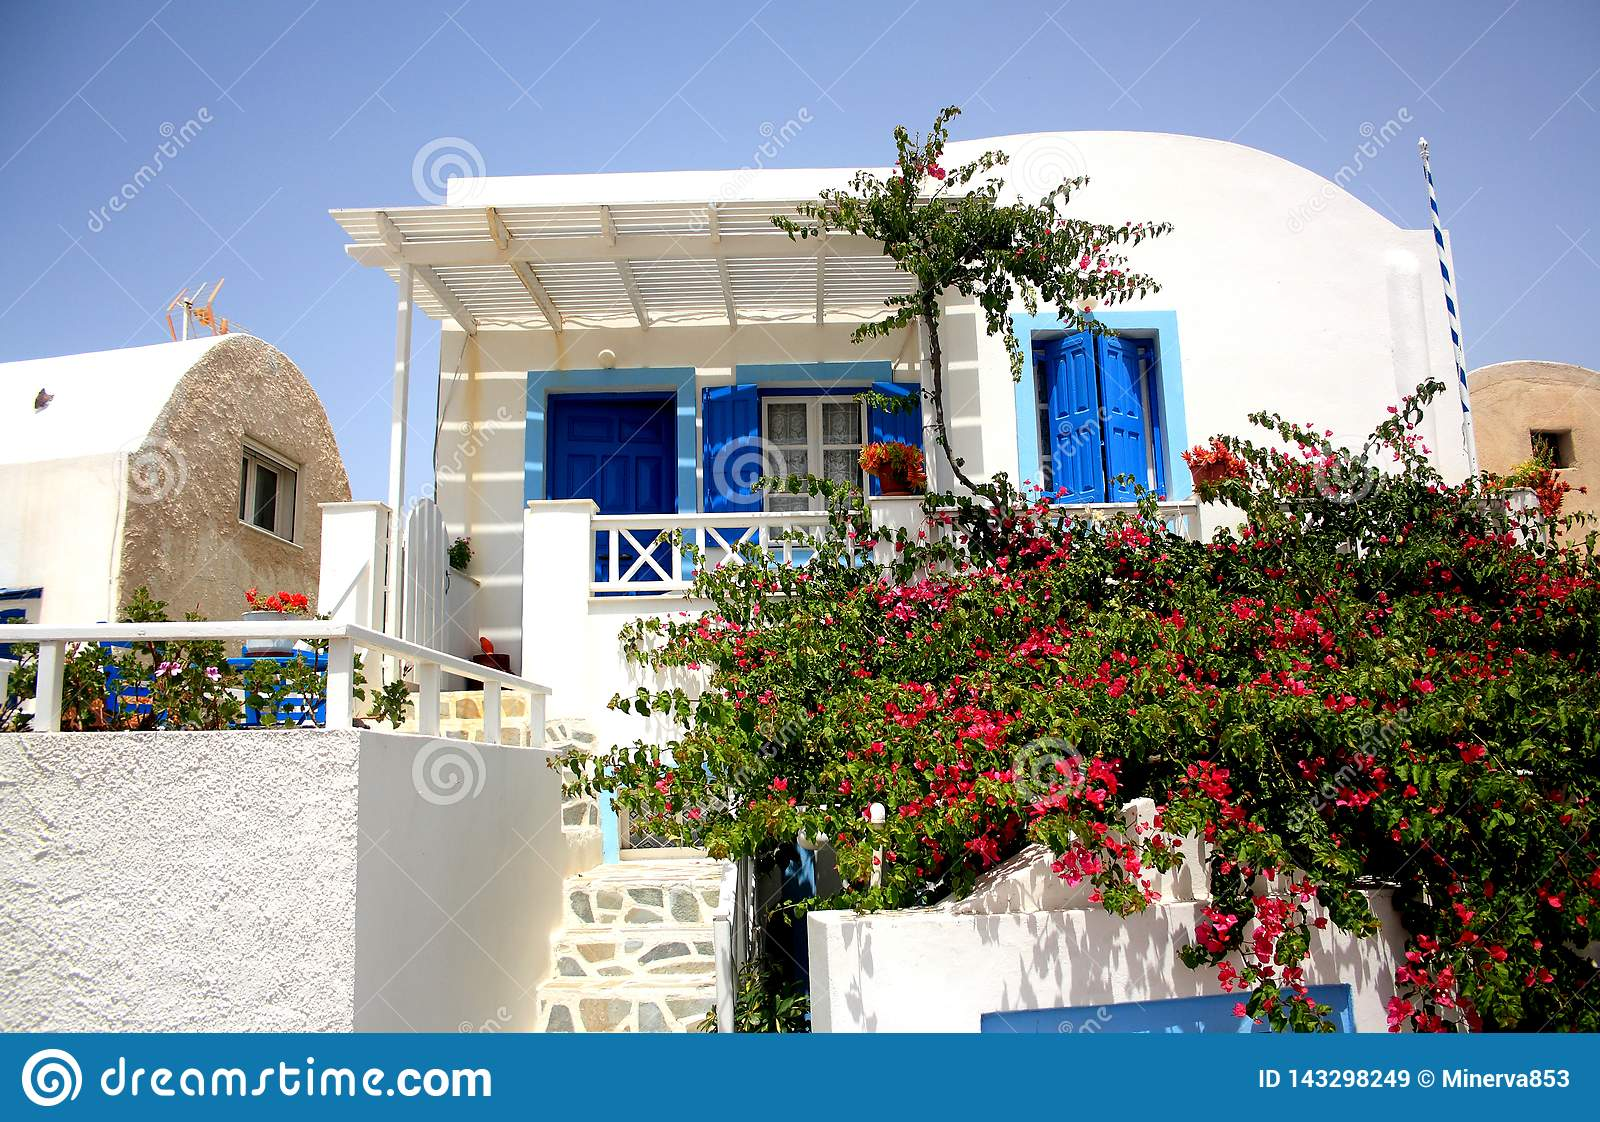 A white house with blue painted doors and window frames and bush with flowers on the front scene in Santorini Island